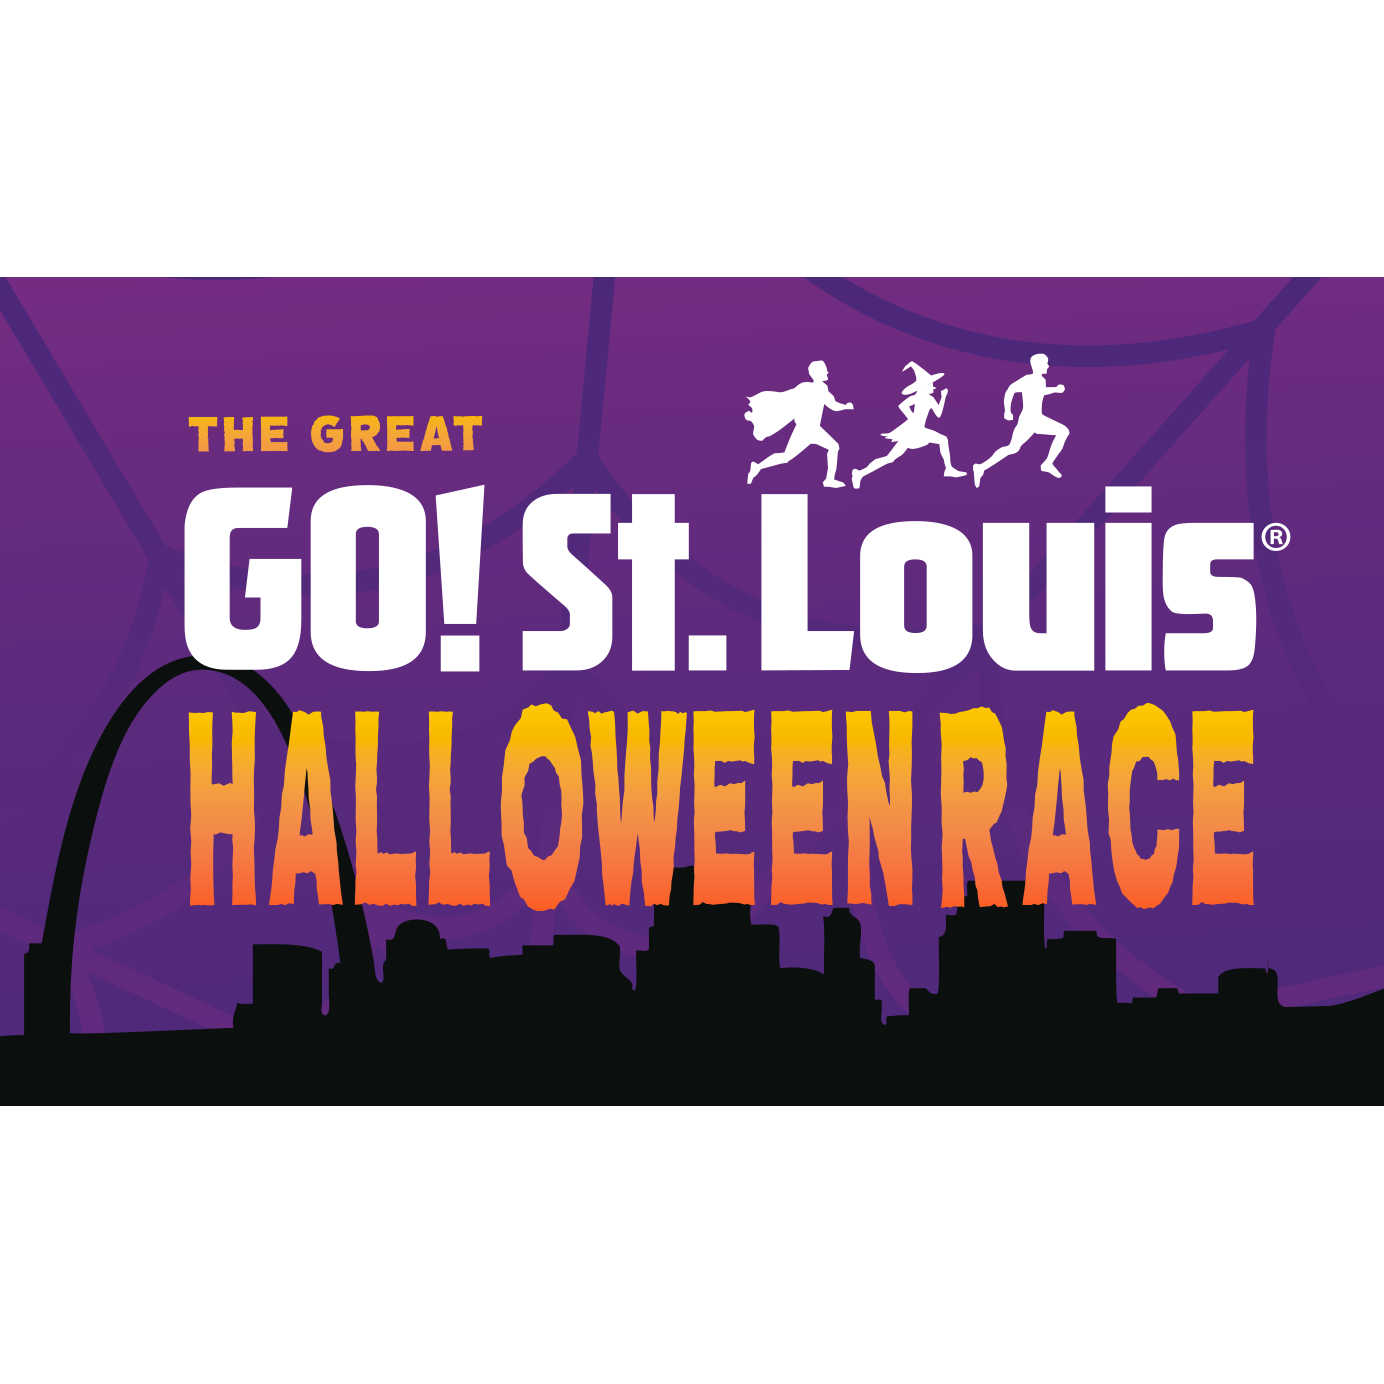 The Great GO! St. Louis Halloween Race